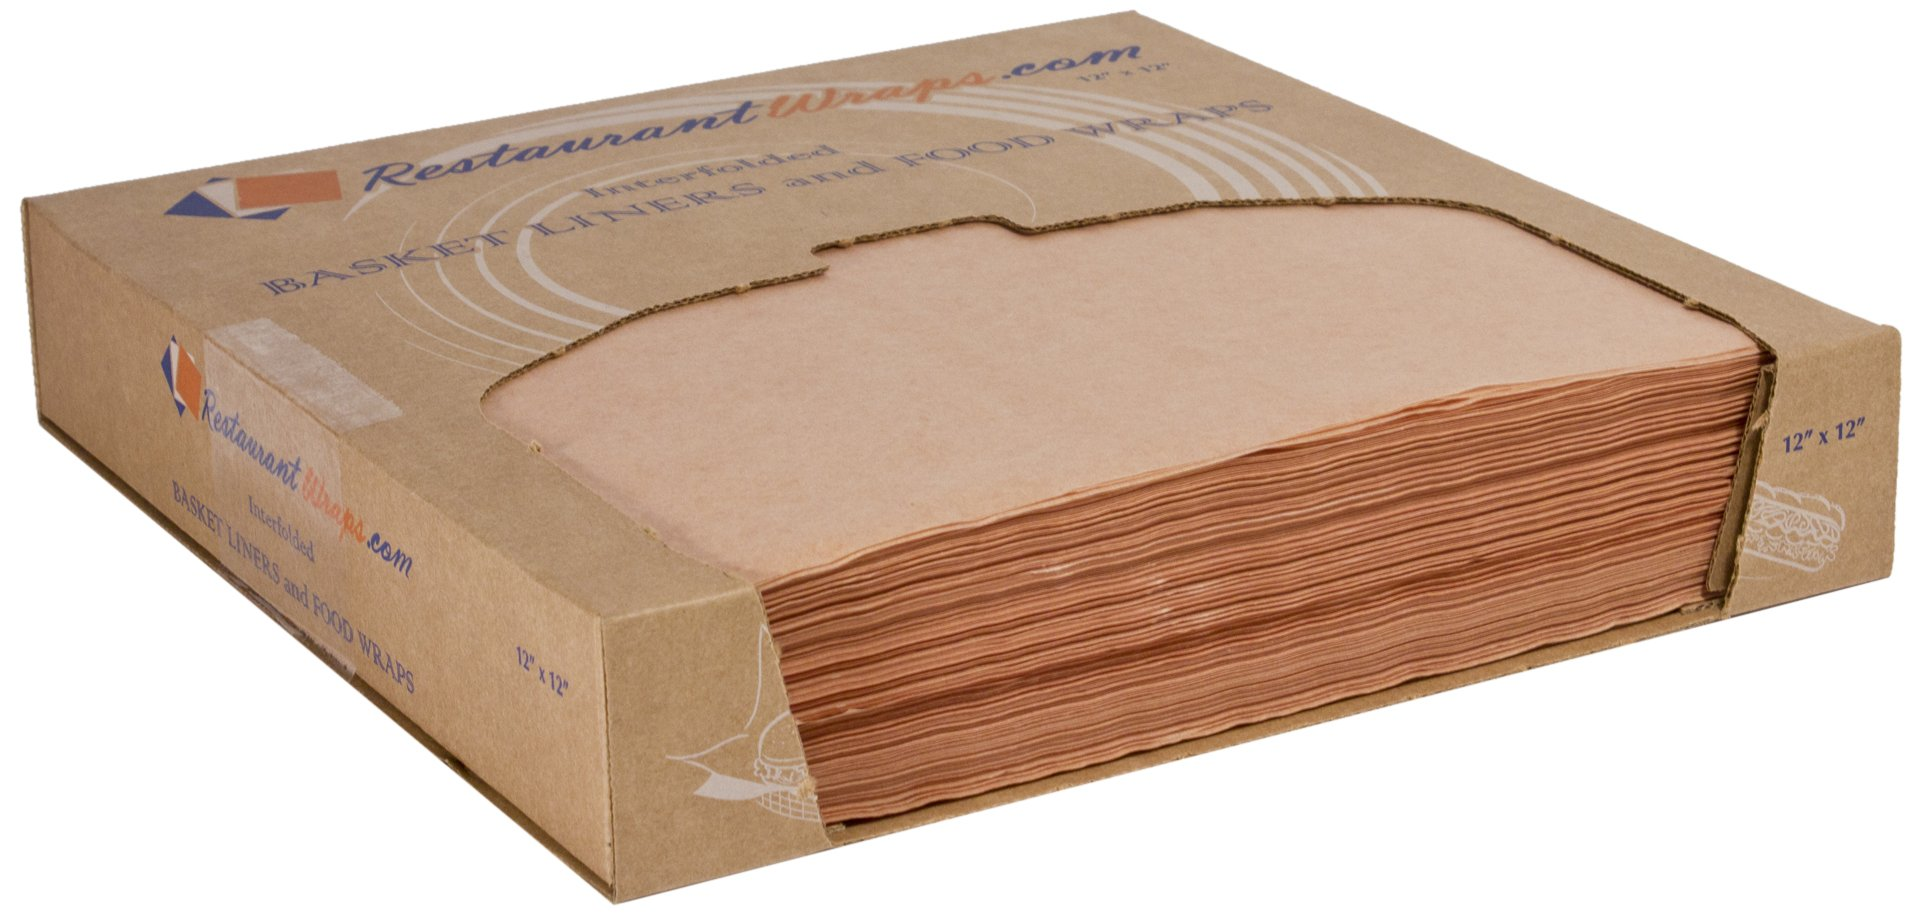 RestaurantWraps.com Waxed Sheets, Basket Liner and Food Wrap, 12'' x 12'', Caramel (6 Packs of 1000 Sheets)